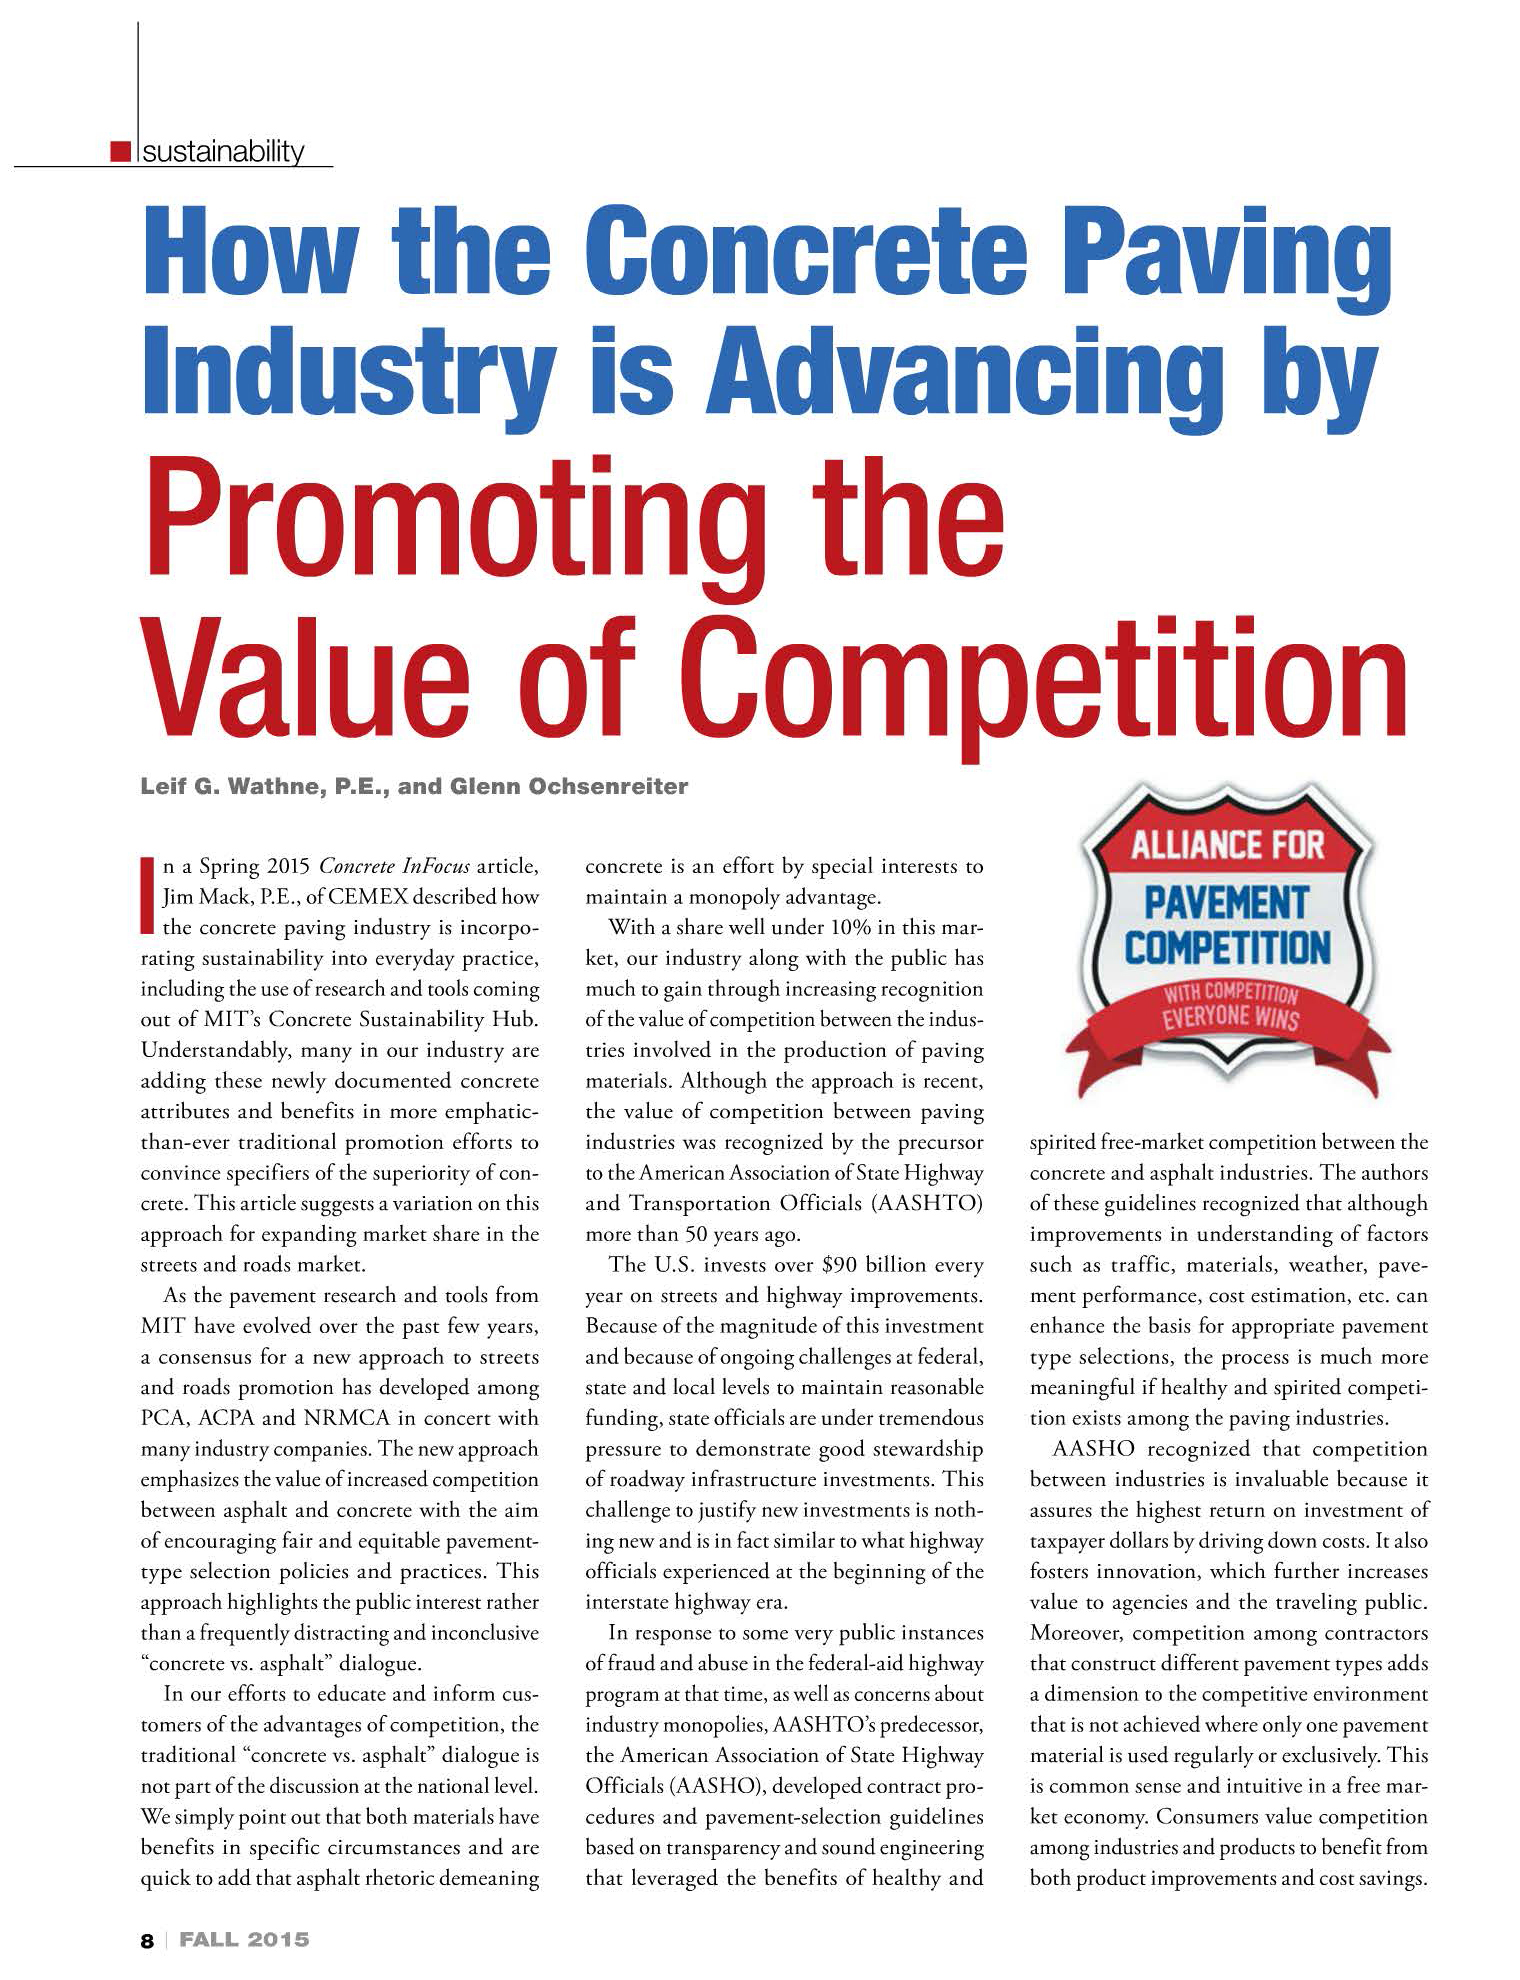 How the Concrete Paving Industry is Advancing by Promoting the Value of Competition